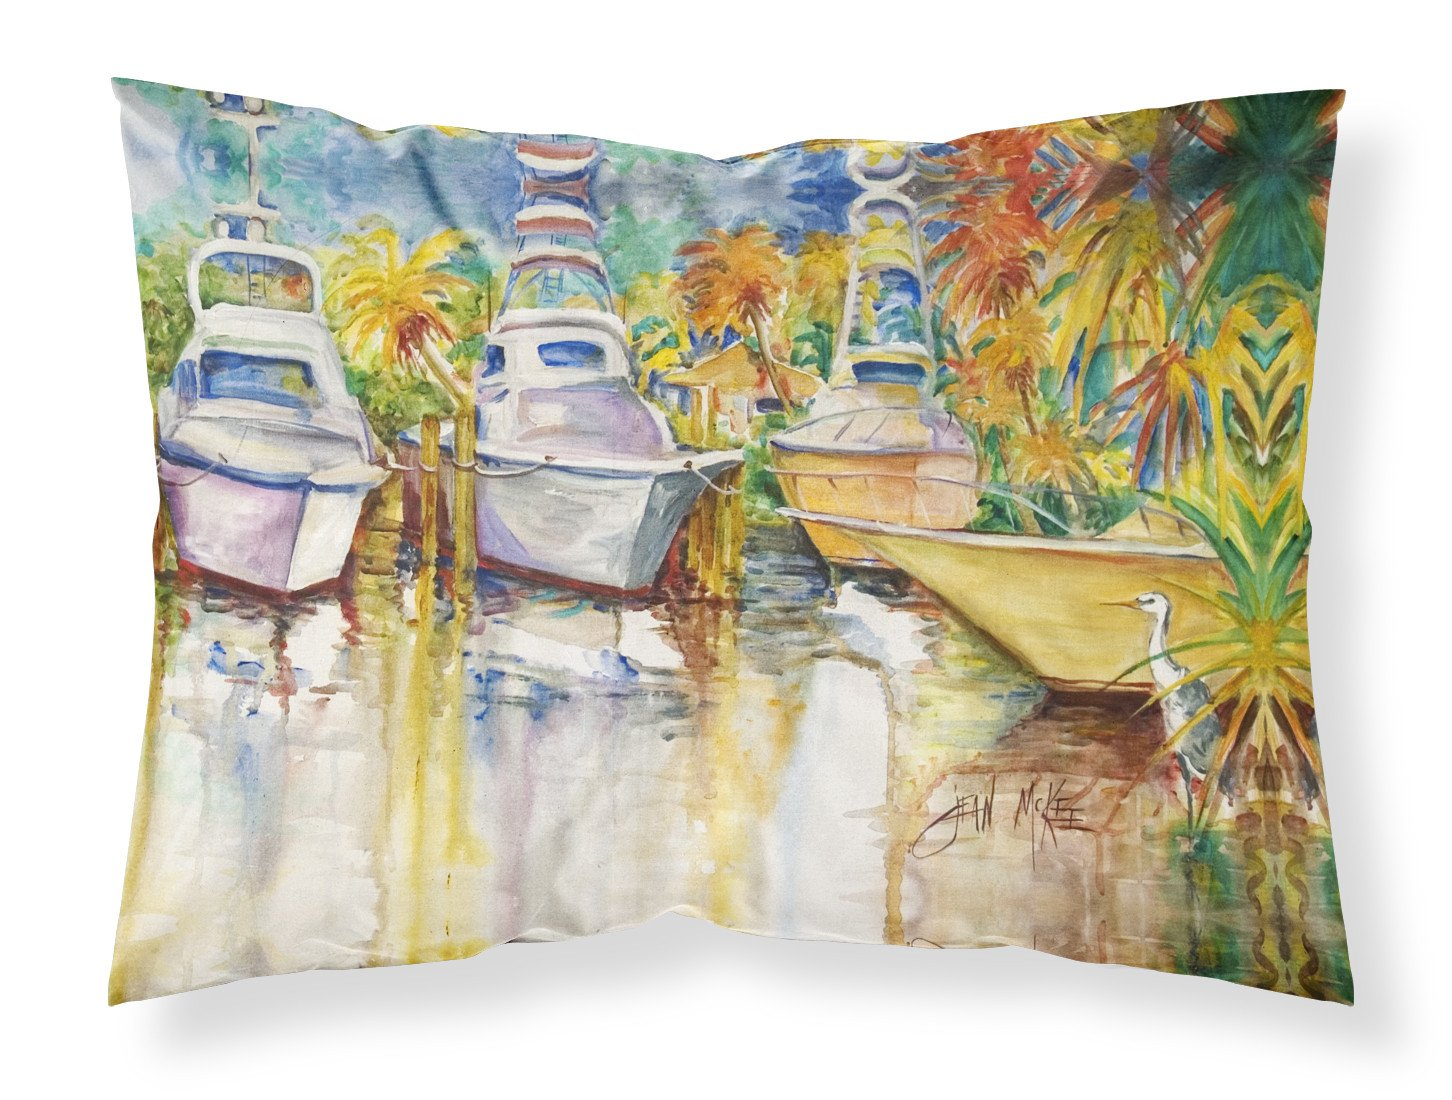 Buy this Blue Heron and Deep Sea Fishing Boats Fabric Standard Pillowcase